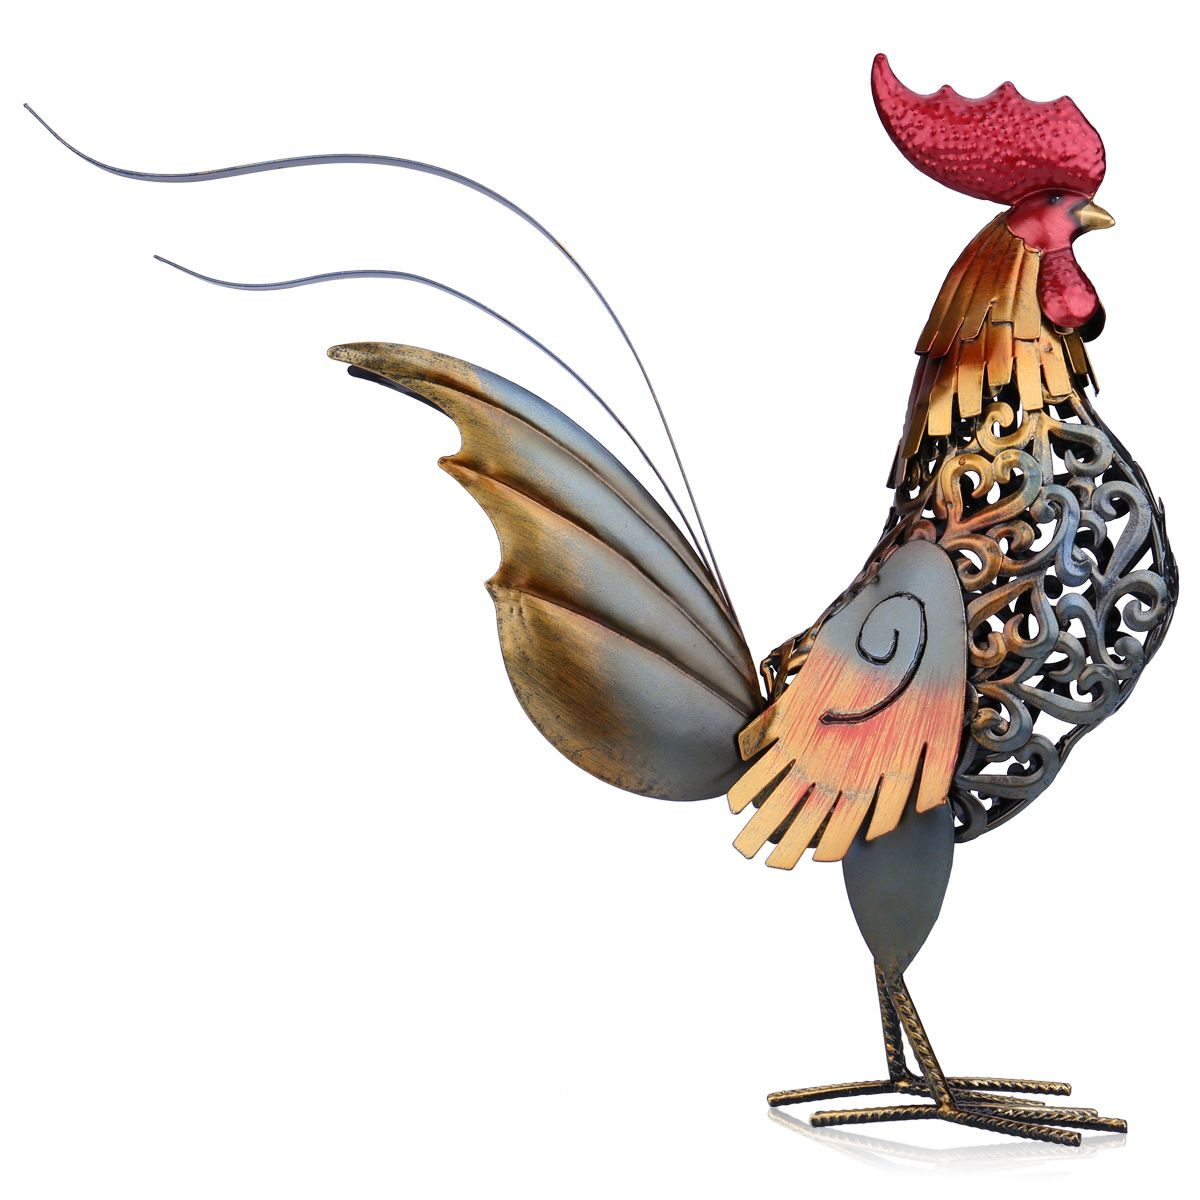 Tooarts Metal Figurine Iron Rooster Home Decor Articles: Tooarts Metal Sculpture Carved Iron Rooster Home